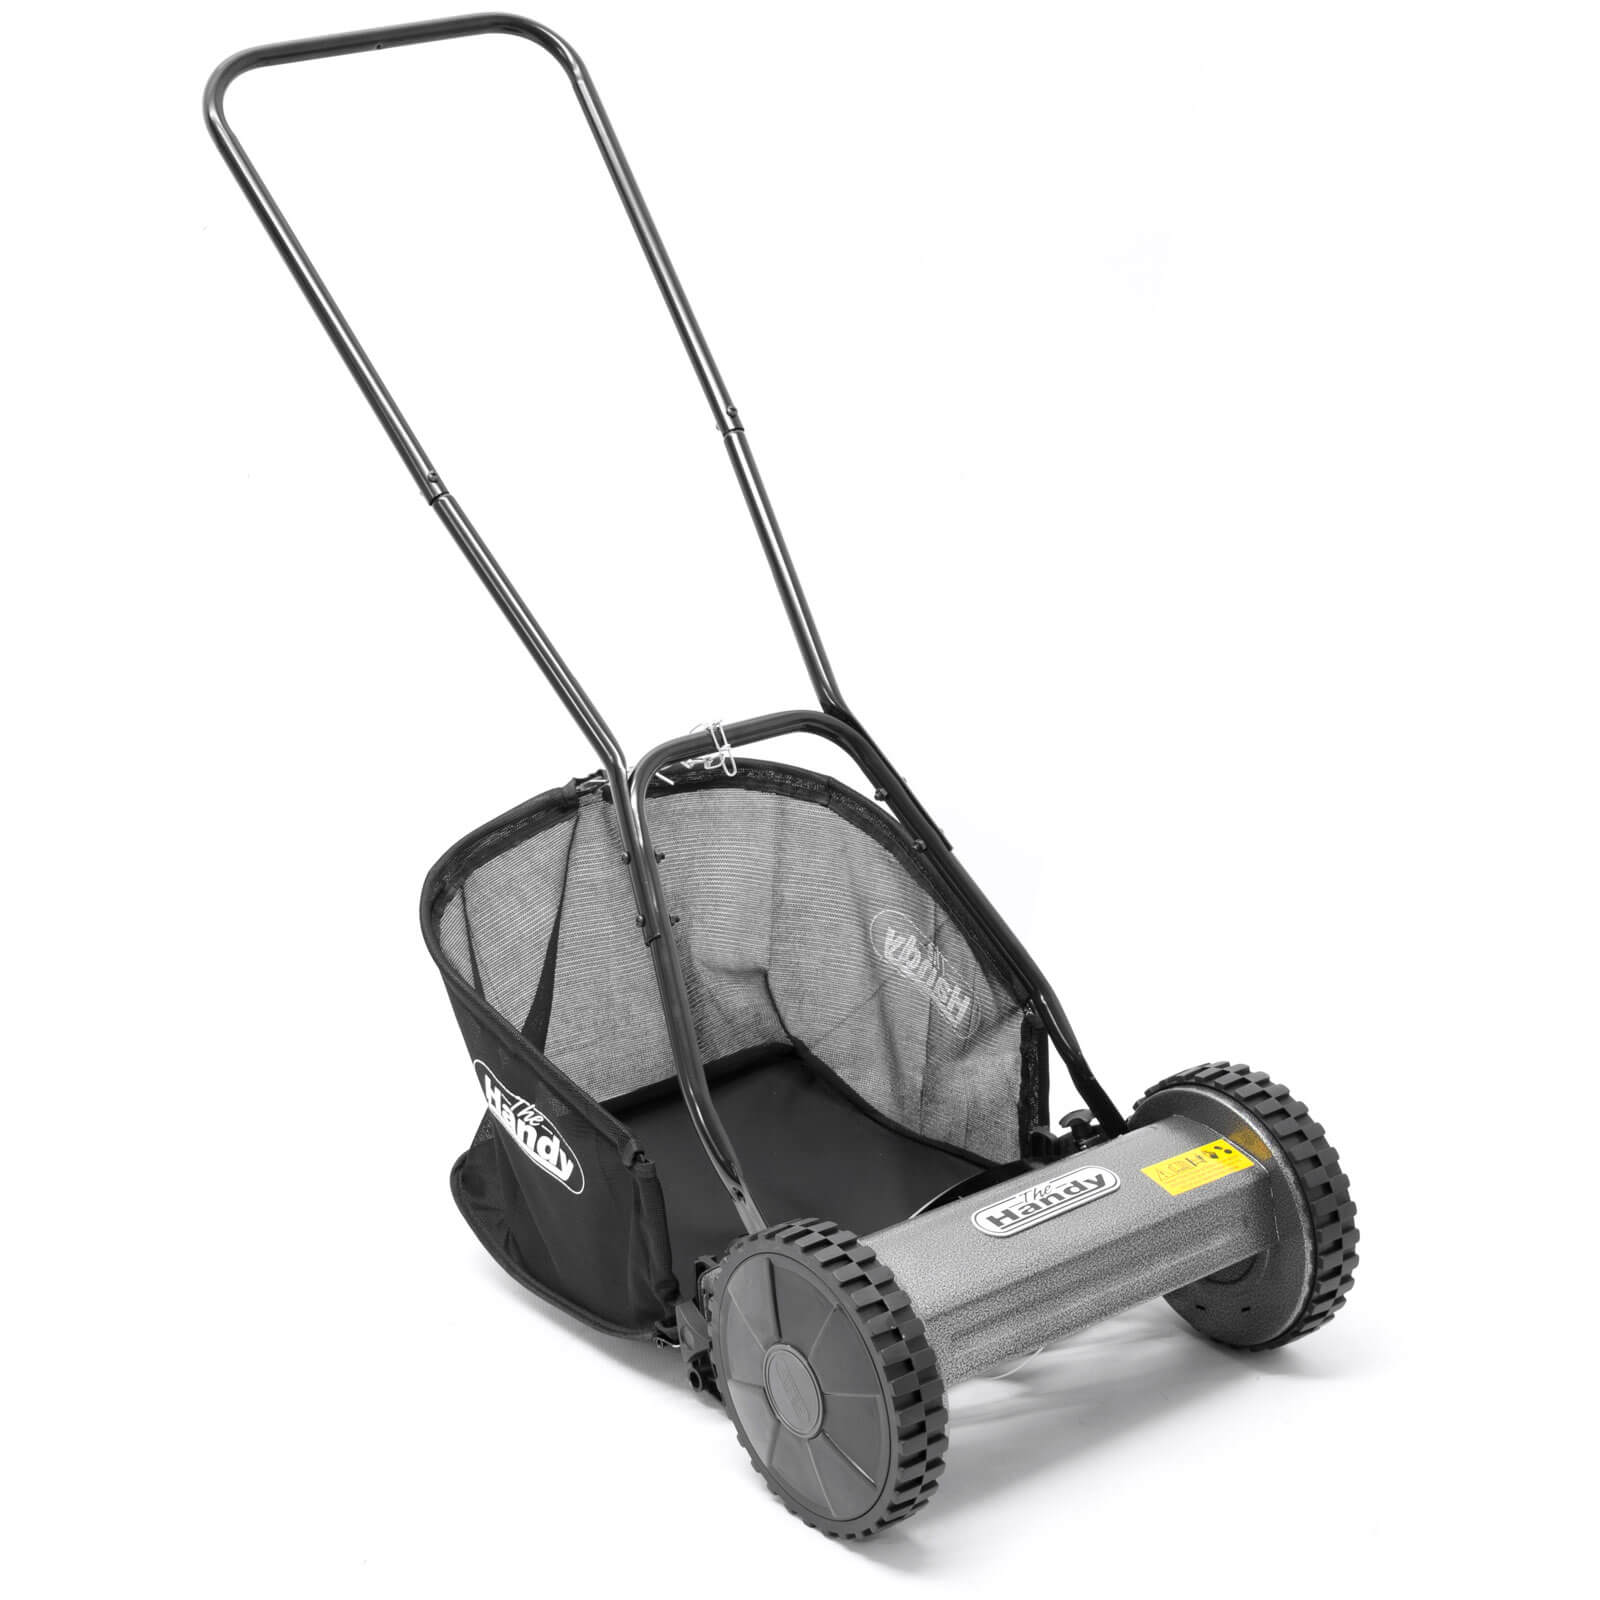 Image of Handy THHM Push Hand Cylinder Lawnmower 300mm